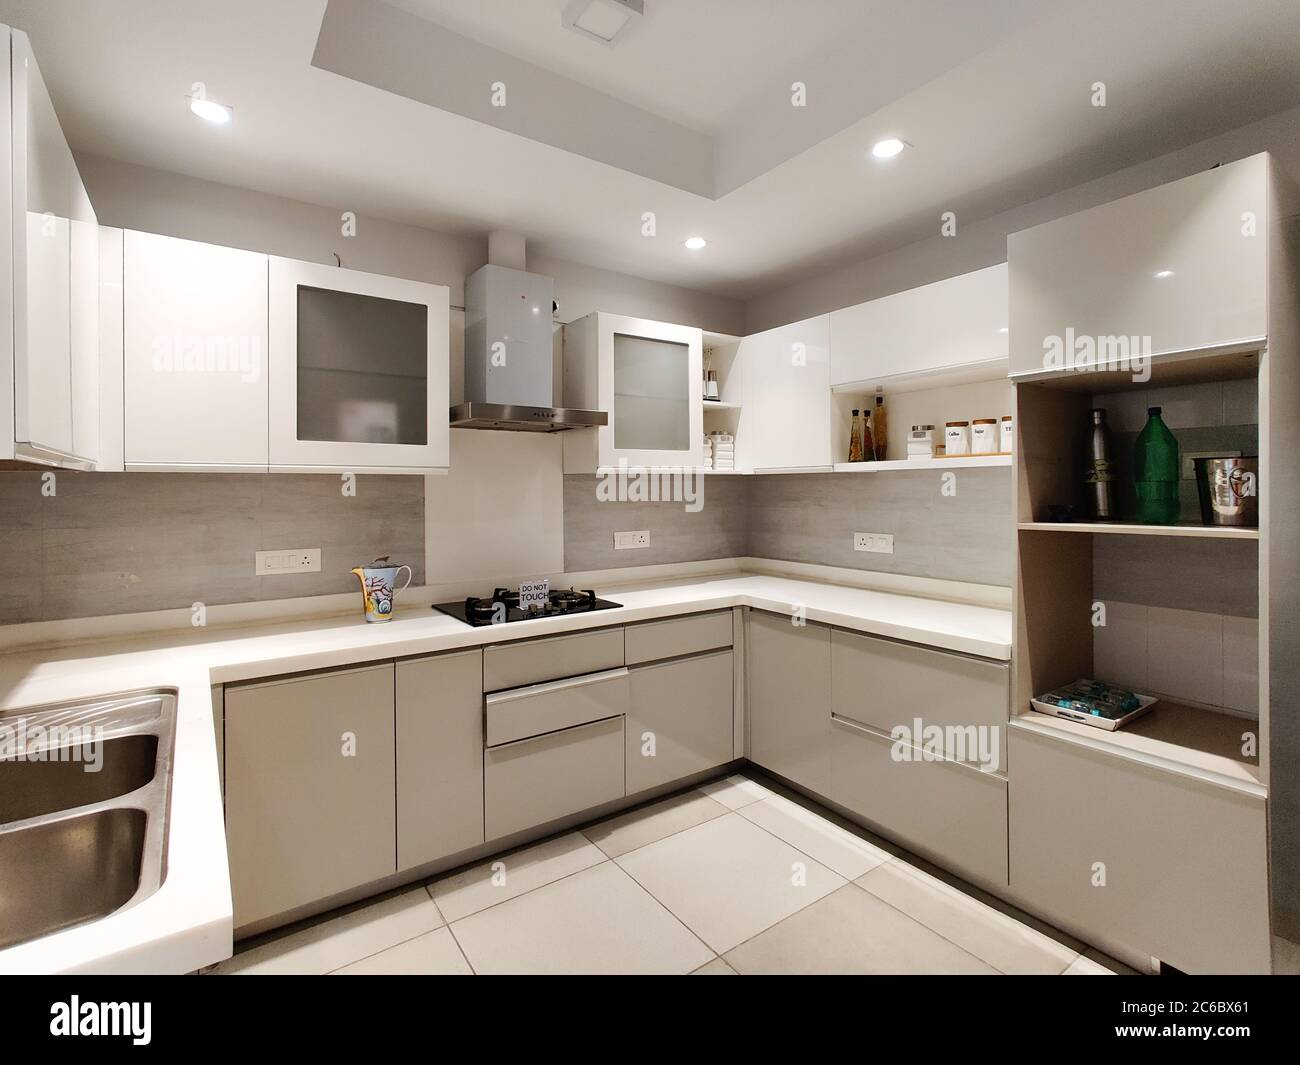 Image of: Wide Angle Shot Of A Modern Modular Kitchen With Inset Lights And Cabinets Stock Photo Alamy